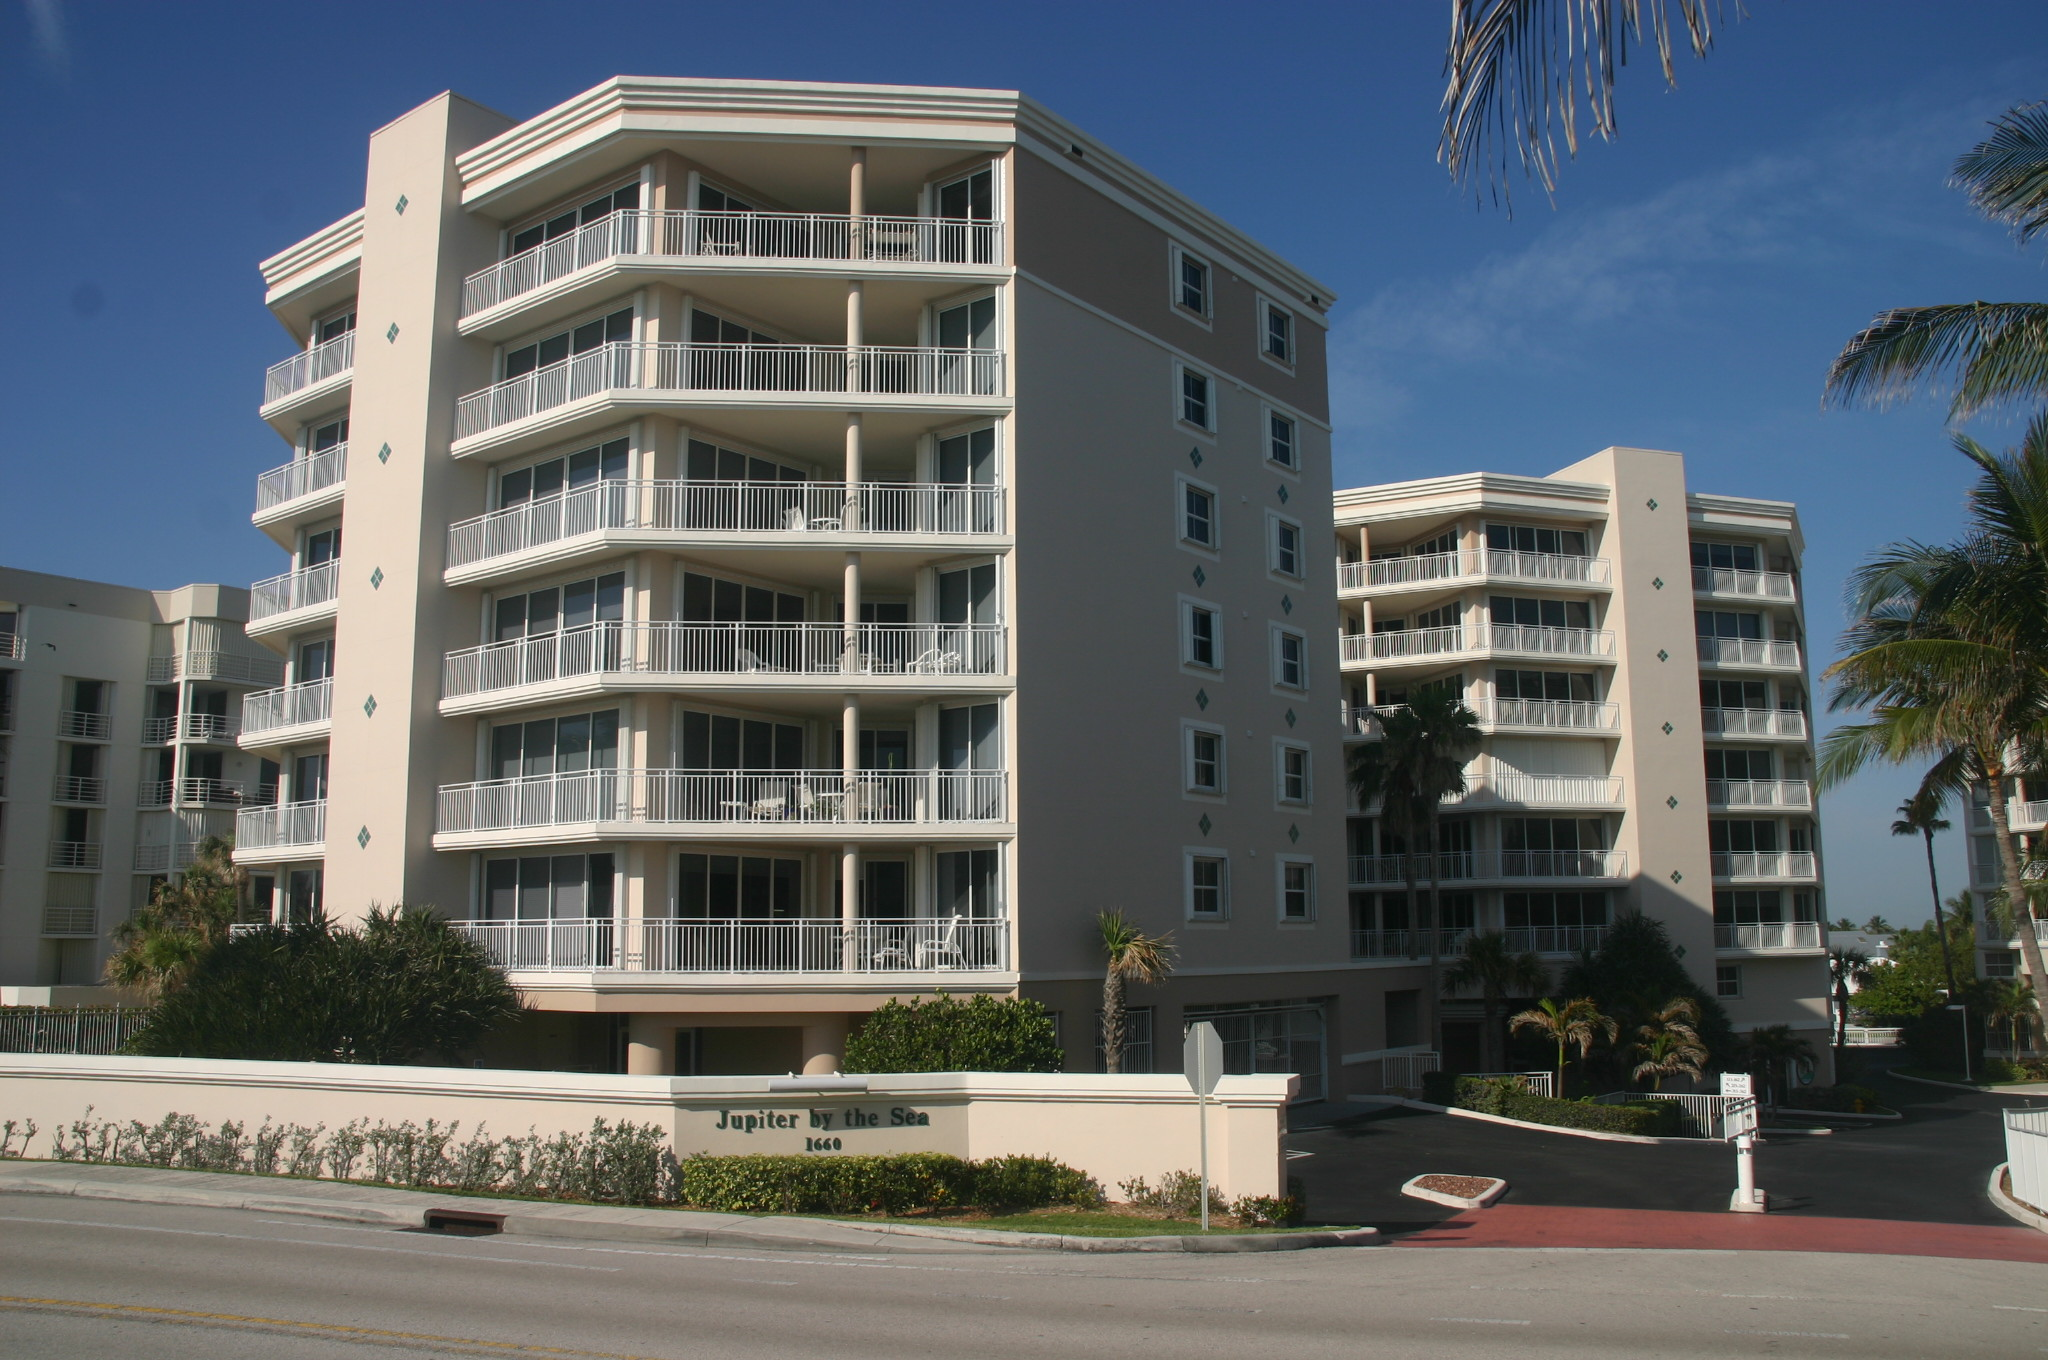 Jupiter By The Sea Condos